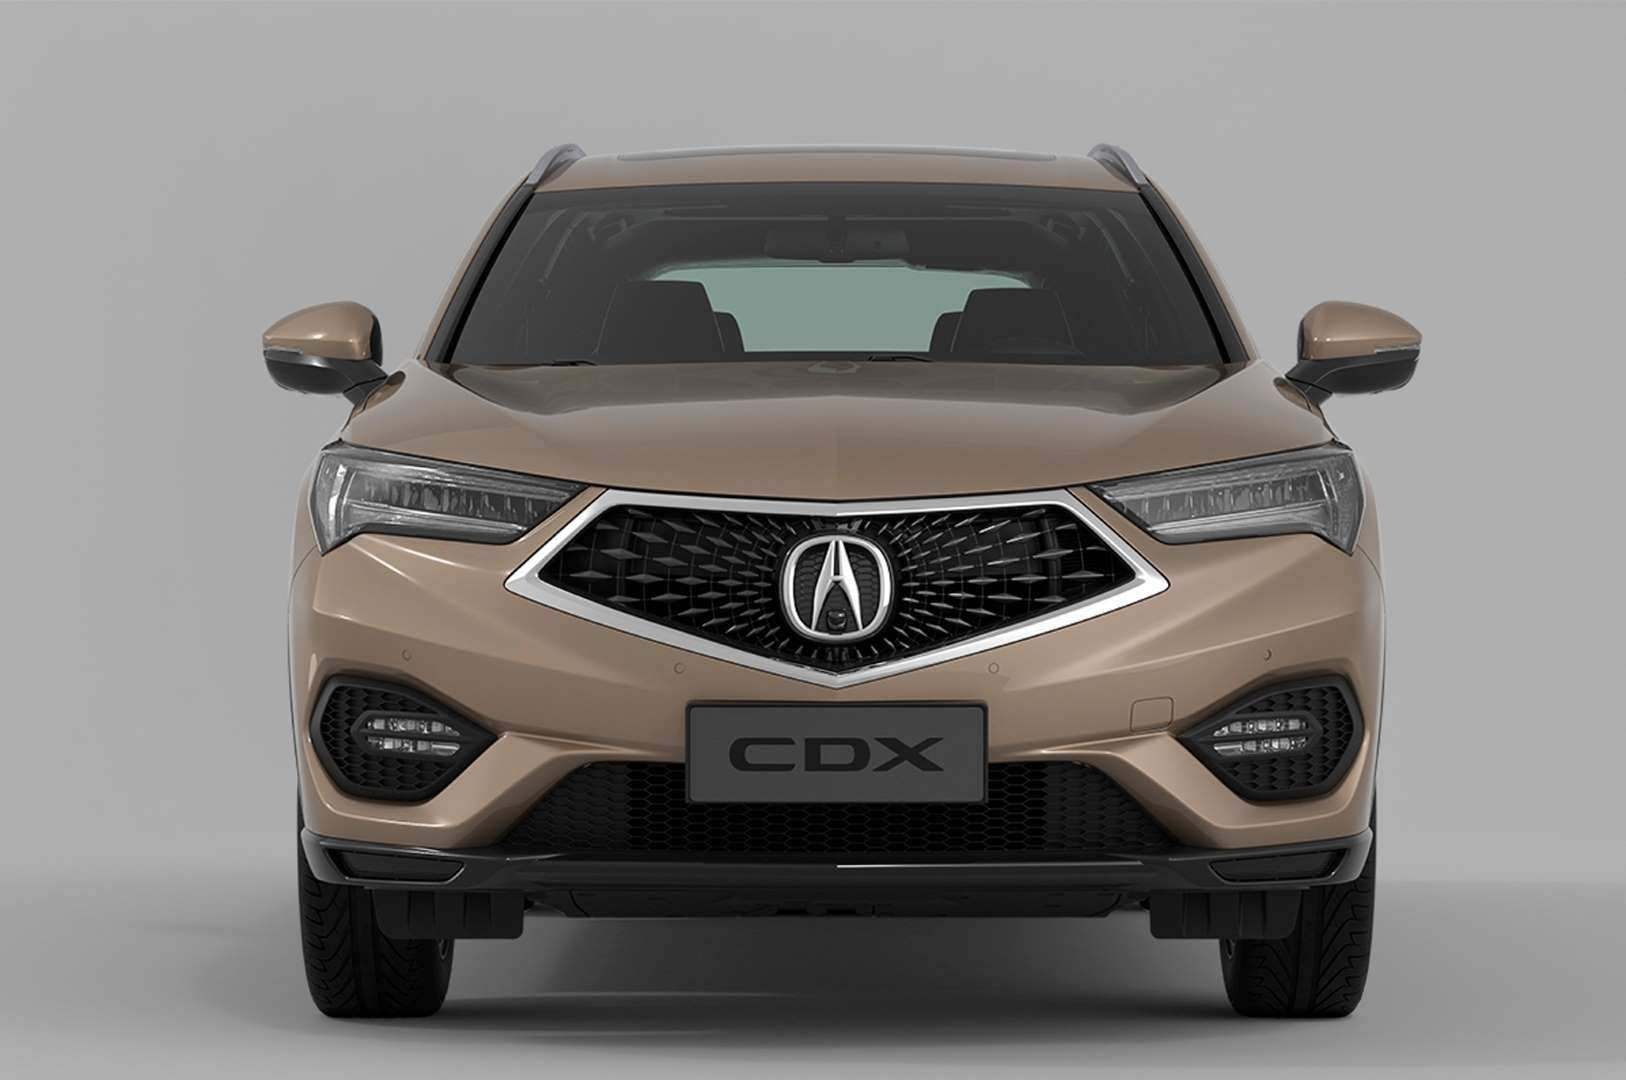 90 The 2020 Acura Cdx New Concept by 2020 Acura Cdx